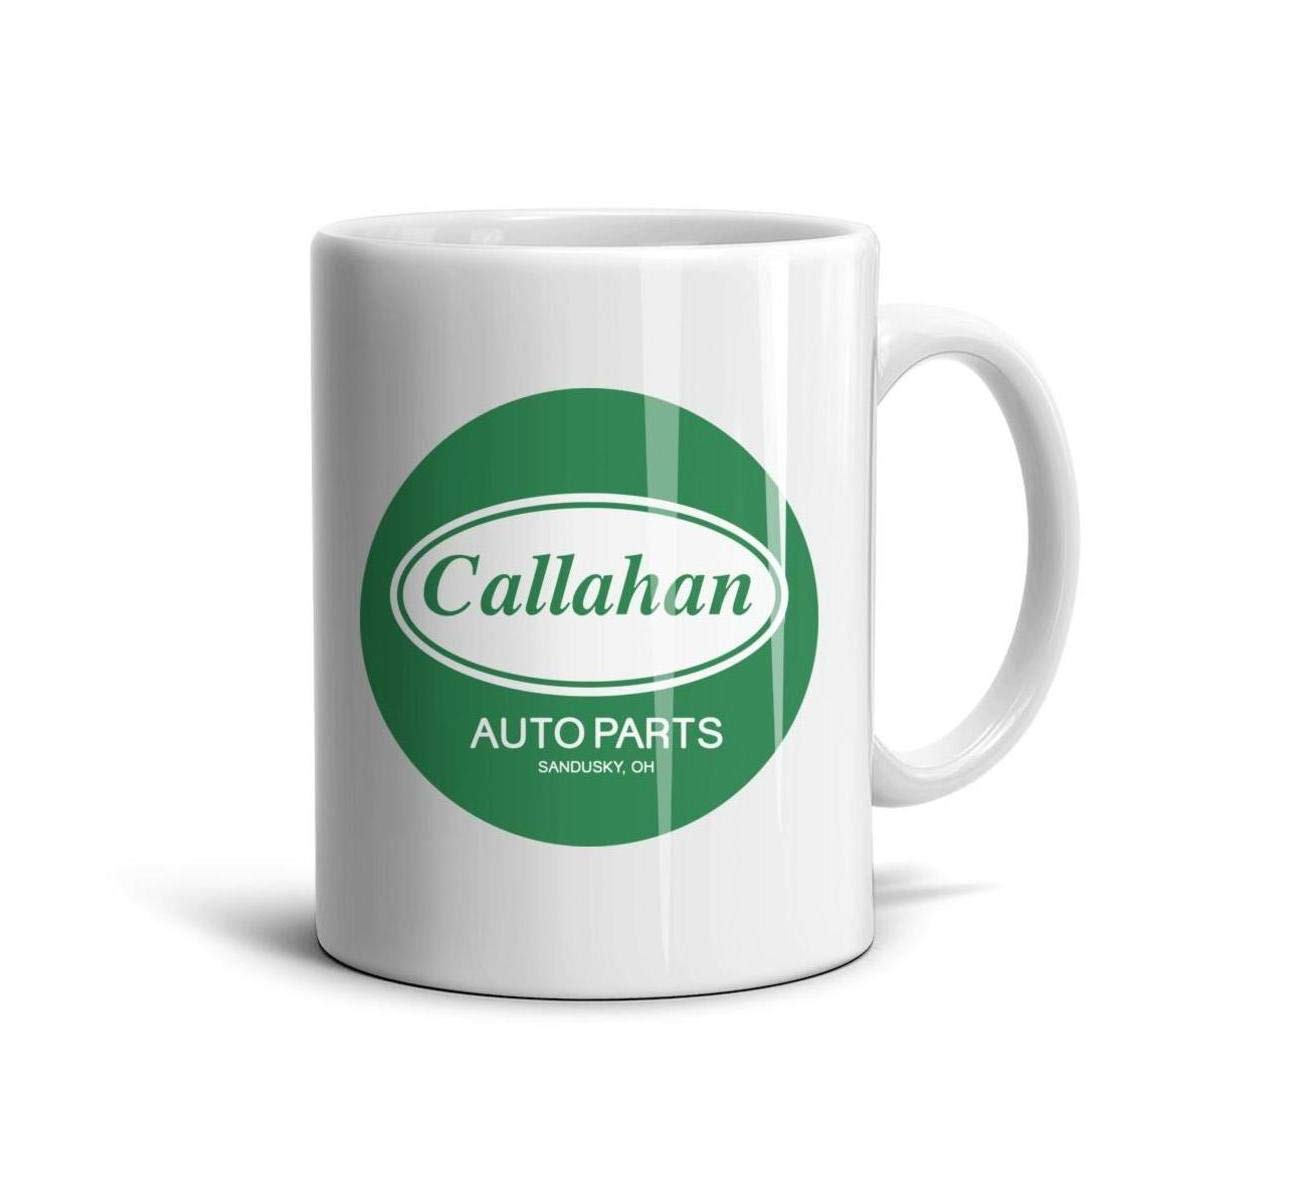 White Ceramic Callahan-Funny-Auto-Parts-Green-White-pin-Logo-Sign-Symbol-Coffee Mug Tea Mugs Teacup 11 oz 330ml Cup Printed Customized Personalized Funny Polished Glossy Gift for Home Office